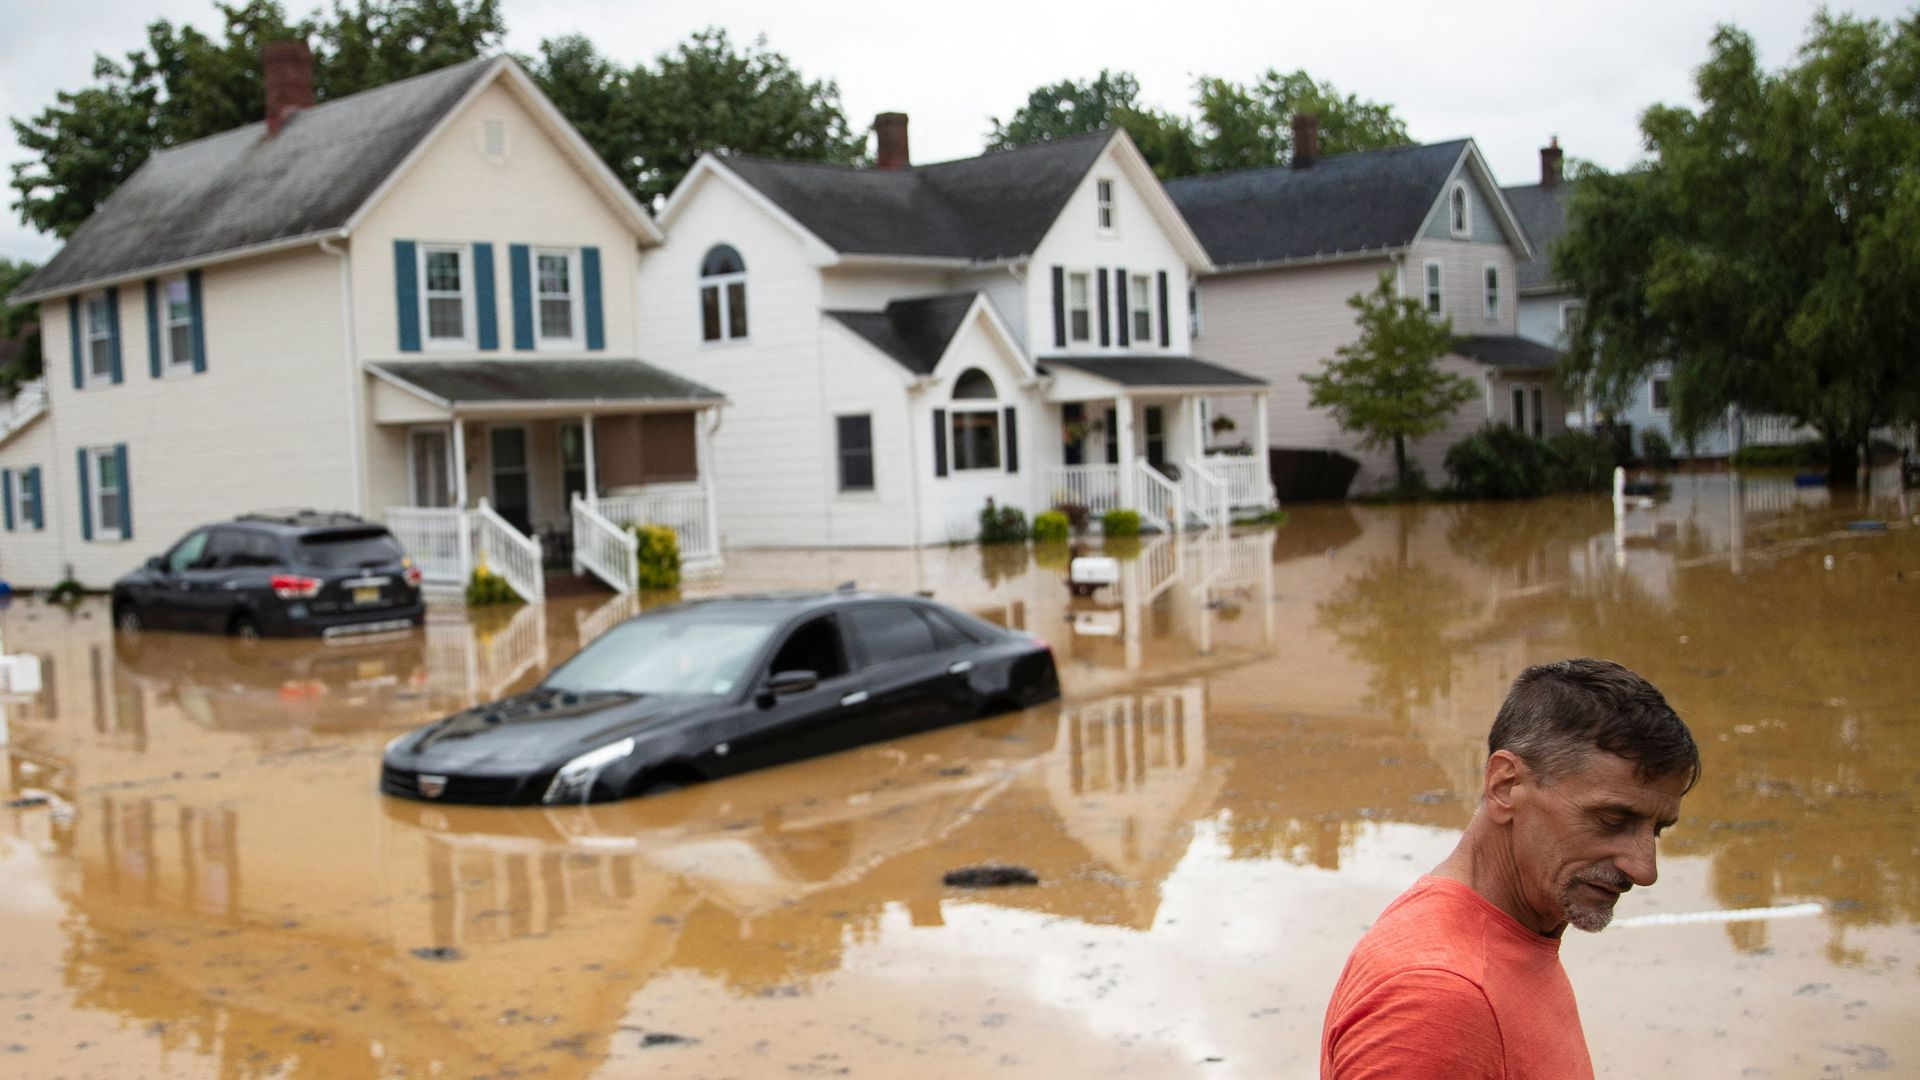 Bruce, an evacuated resident, wades through high water following a flash flood, as Tropical Storm Henri makes landfall, in Helmetta, New Jersey, on August 22